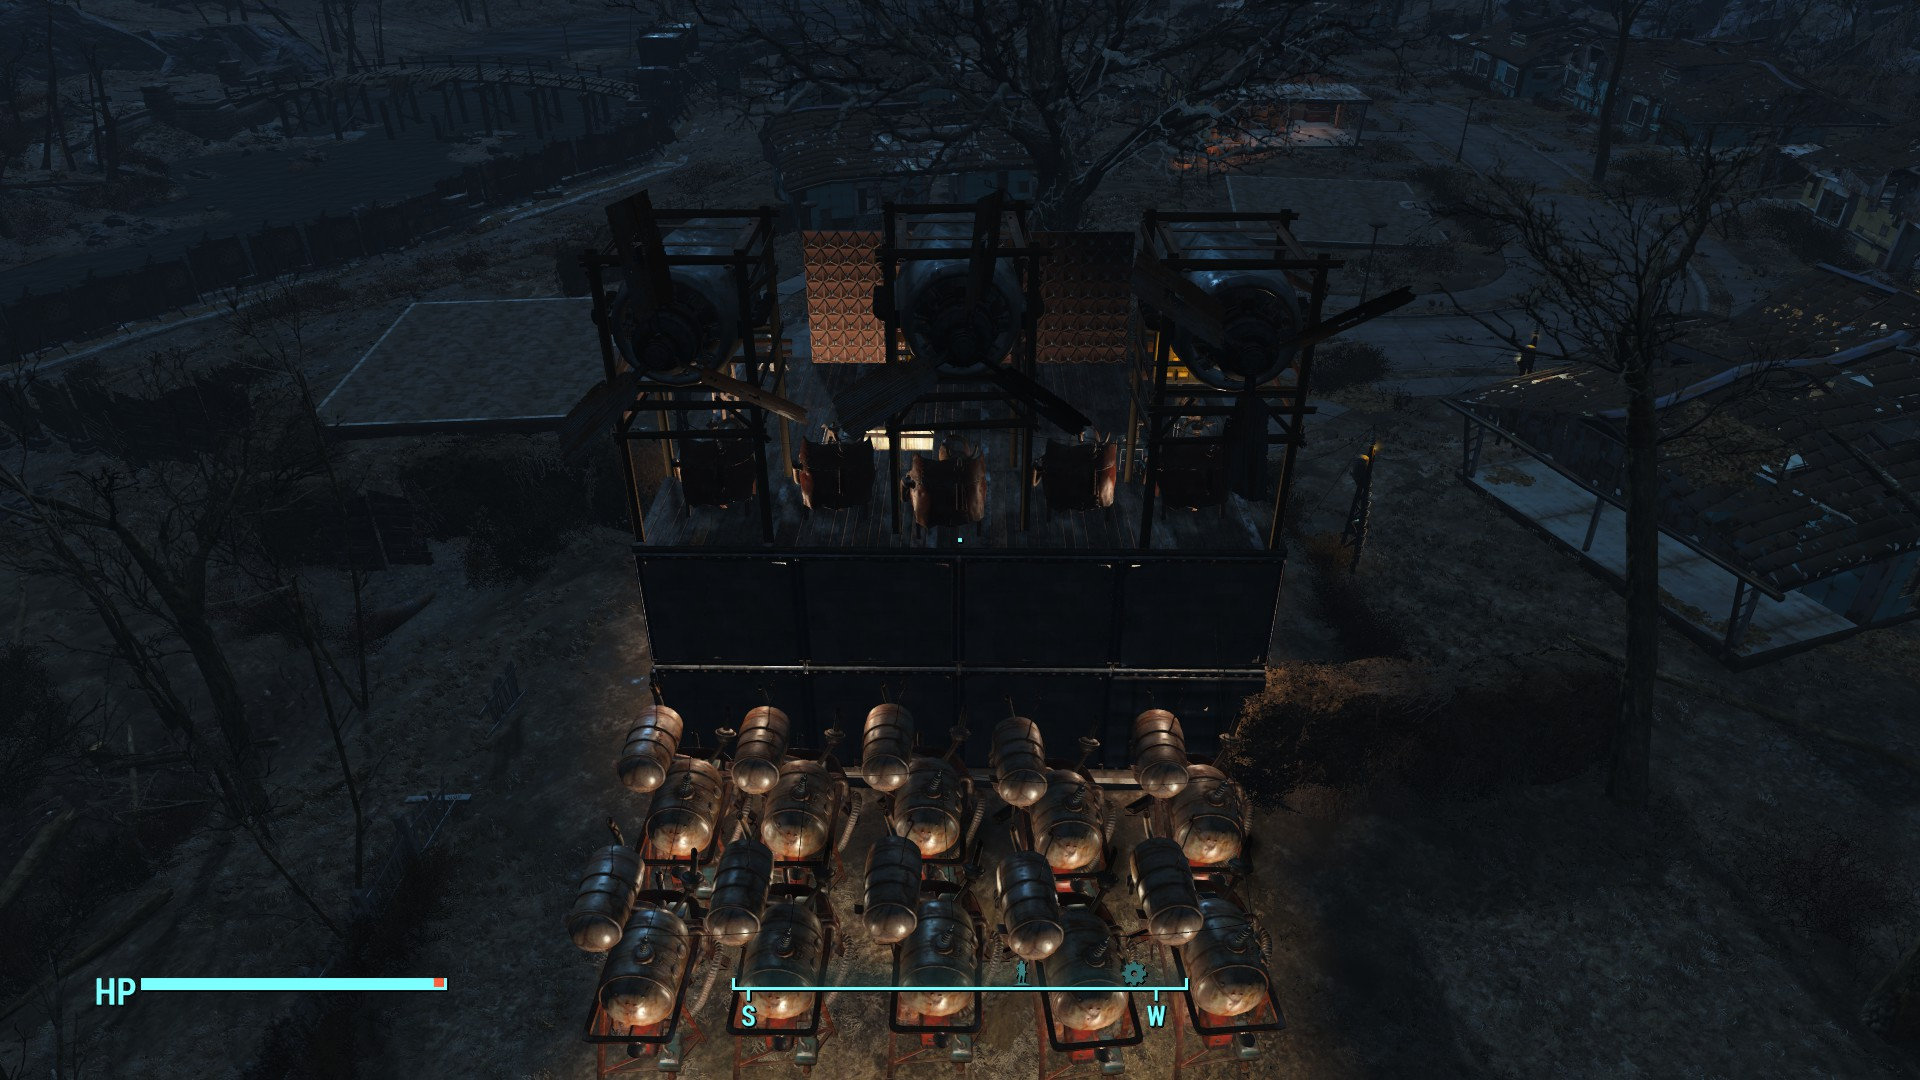 Fallout 4 Wall Light Not Working : Fallout 4 making an animated Space Invaders billboard VG247